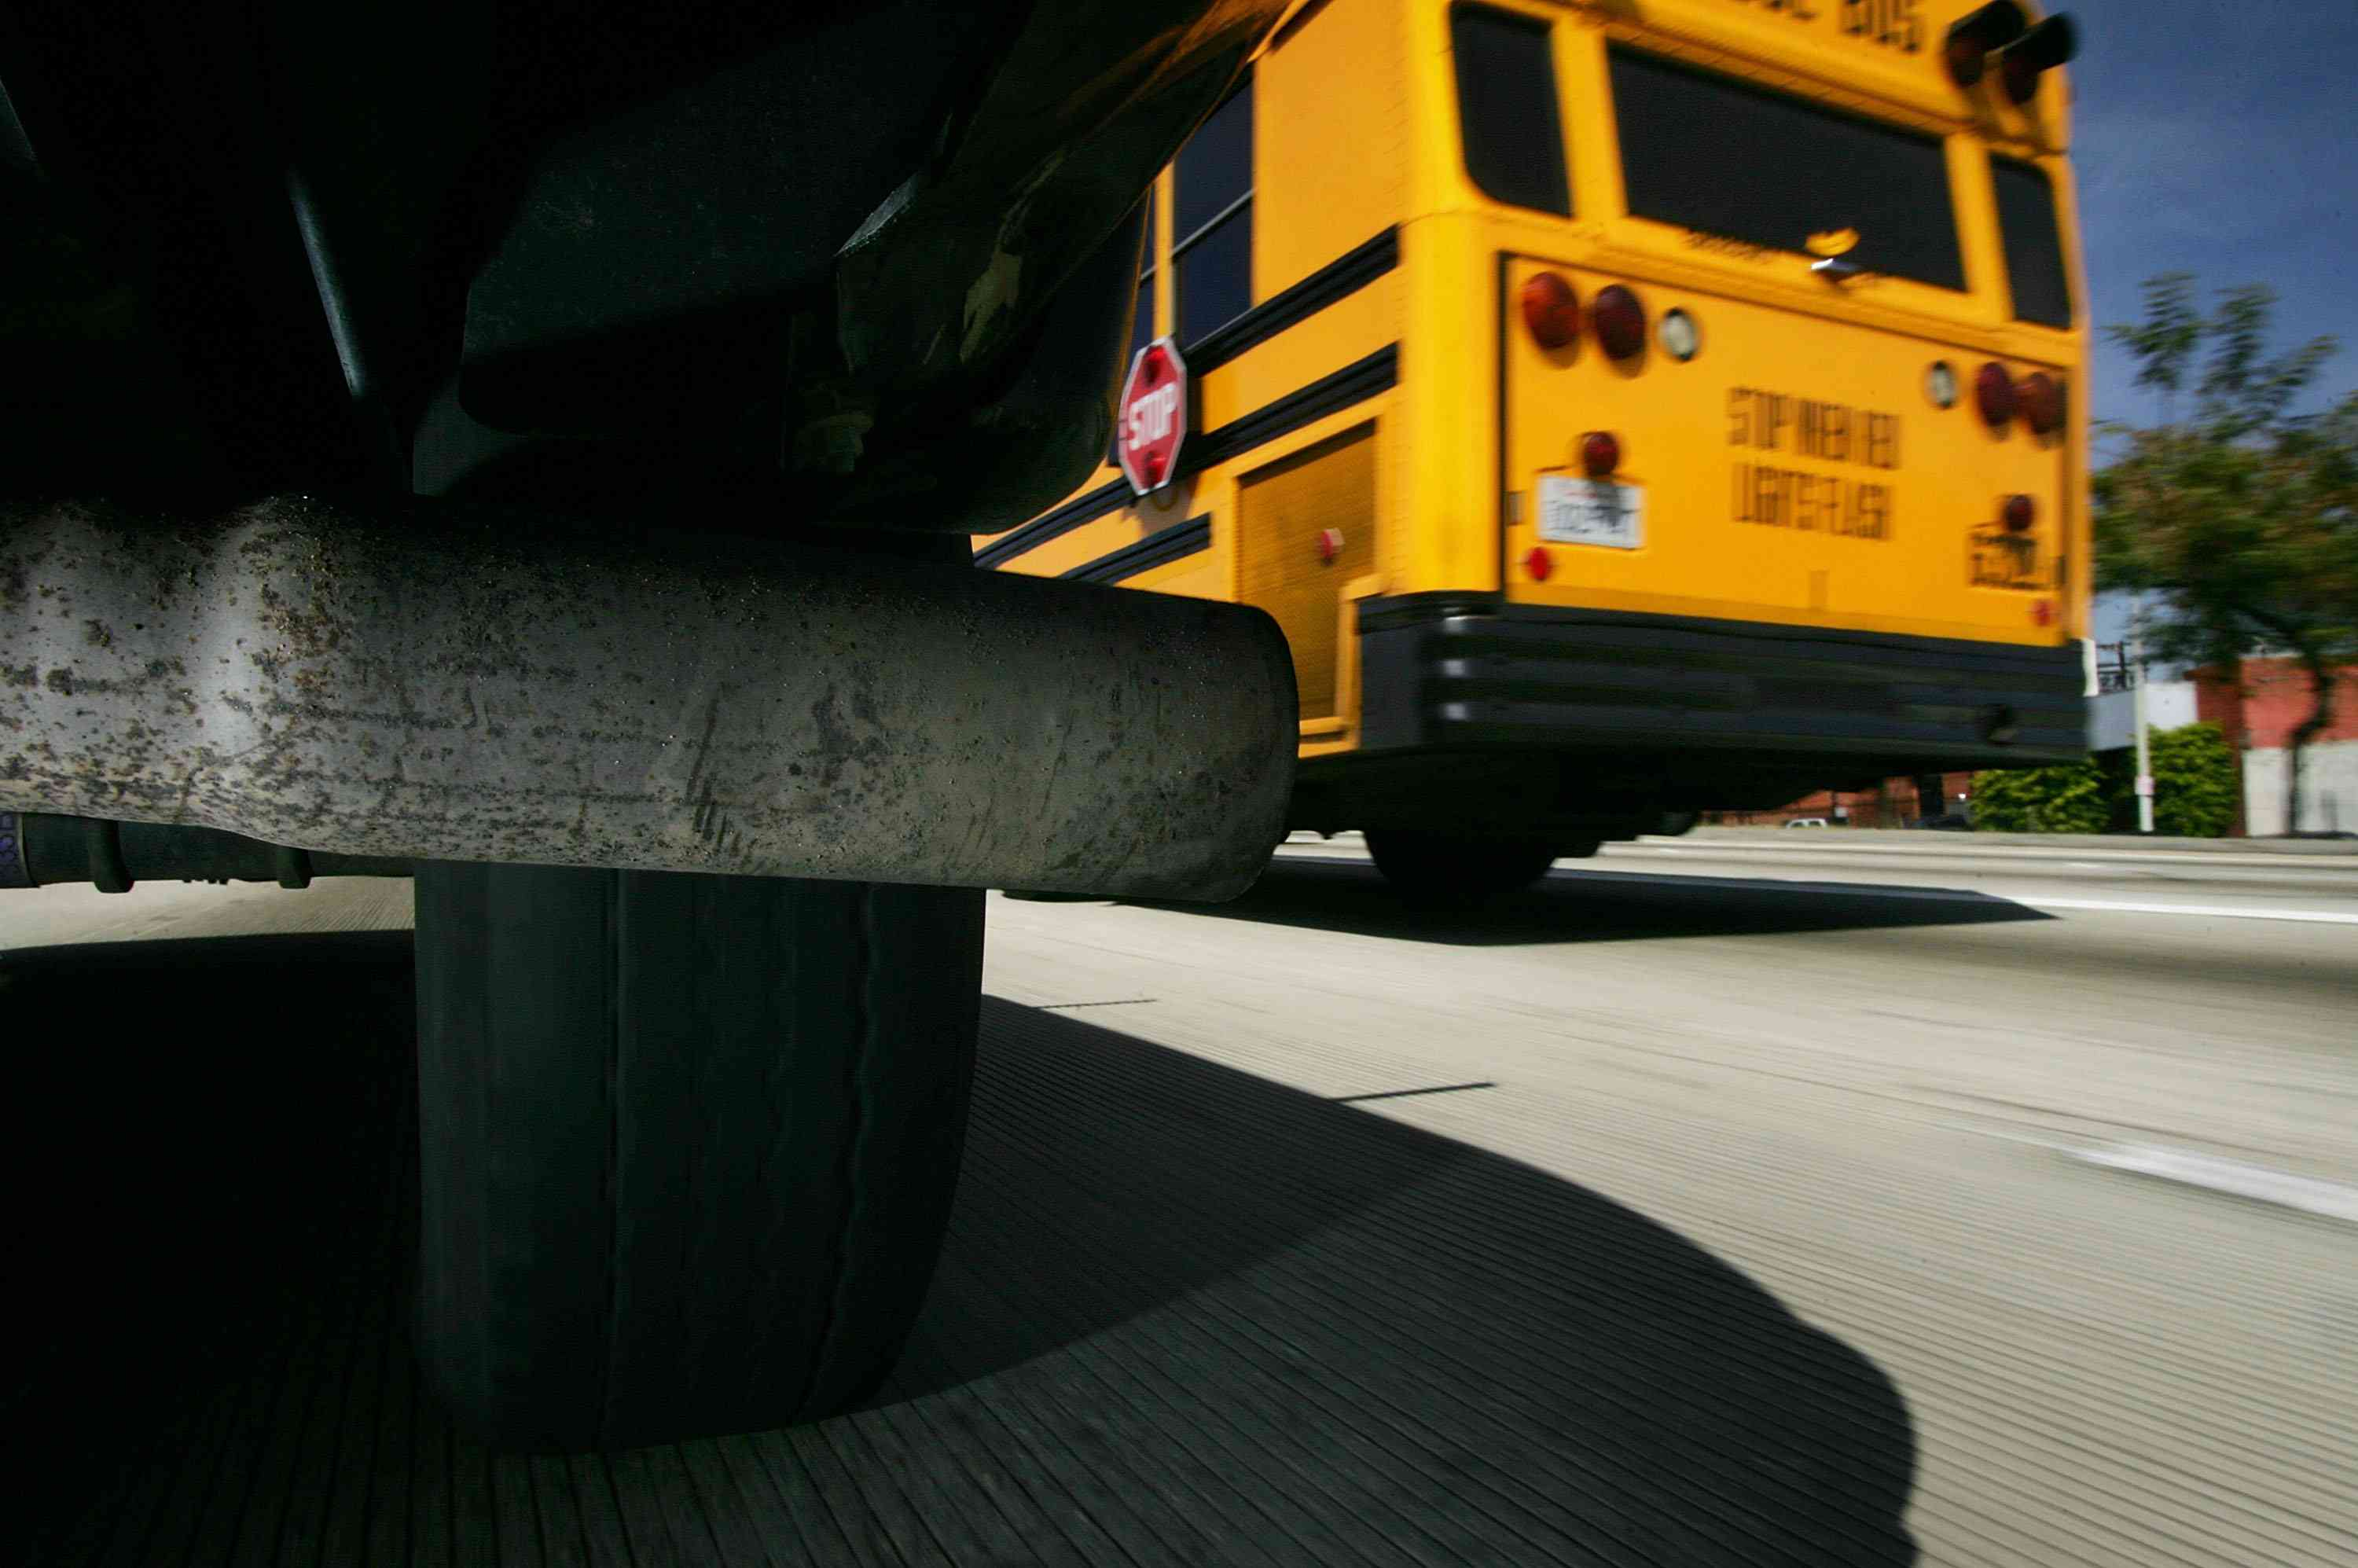 Tailpipe and bus